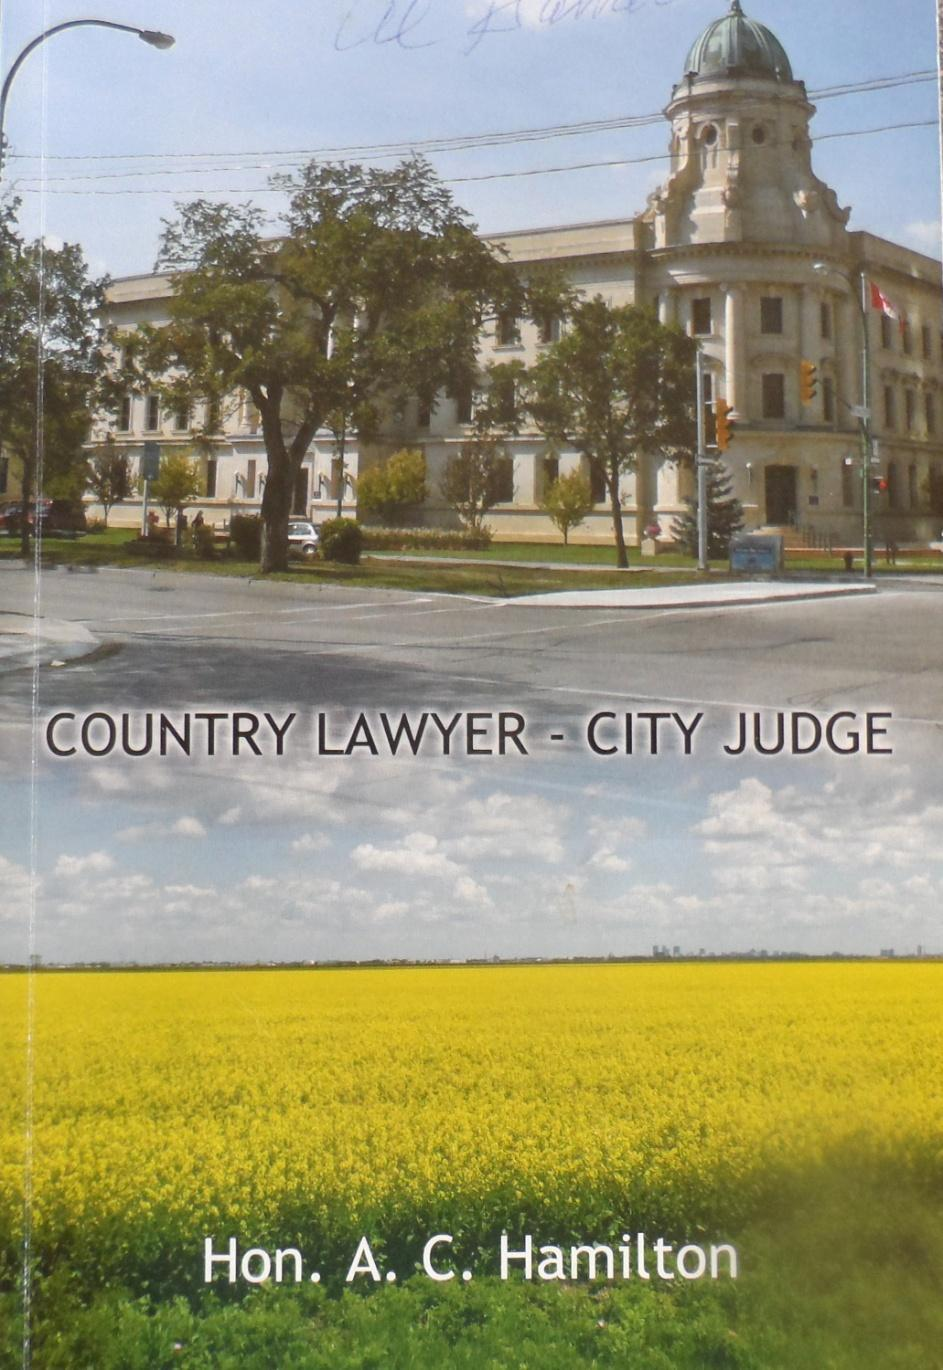 Country Lawyer, City Judge Written and Published by The Honorable A.C. Hamilton, 2007 Each chapter in Country Lawyer, City Judge takes us inside the allegations of foibles, tragedies, broken promises and predations that daily parade through our judicial system.